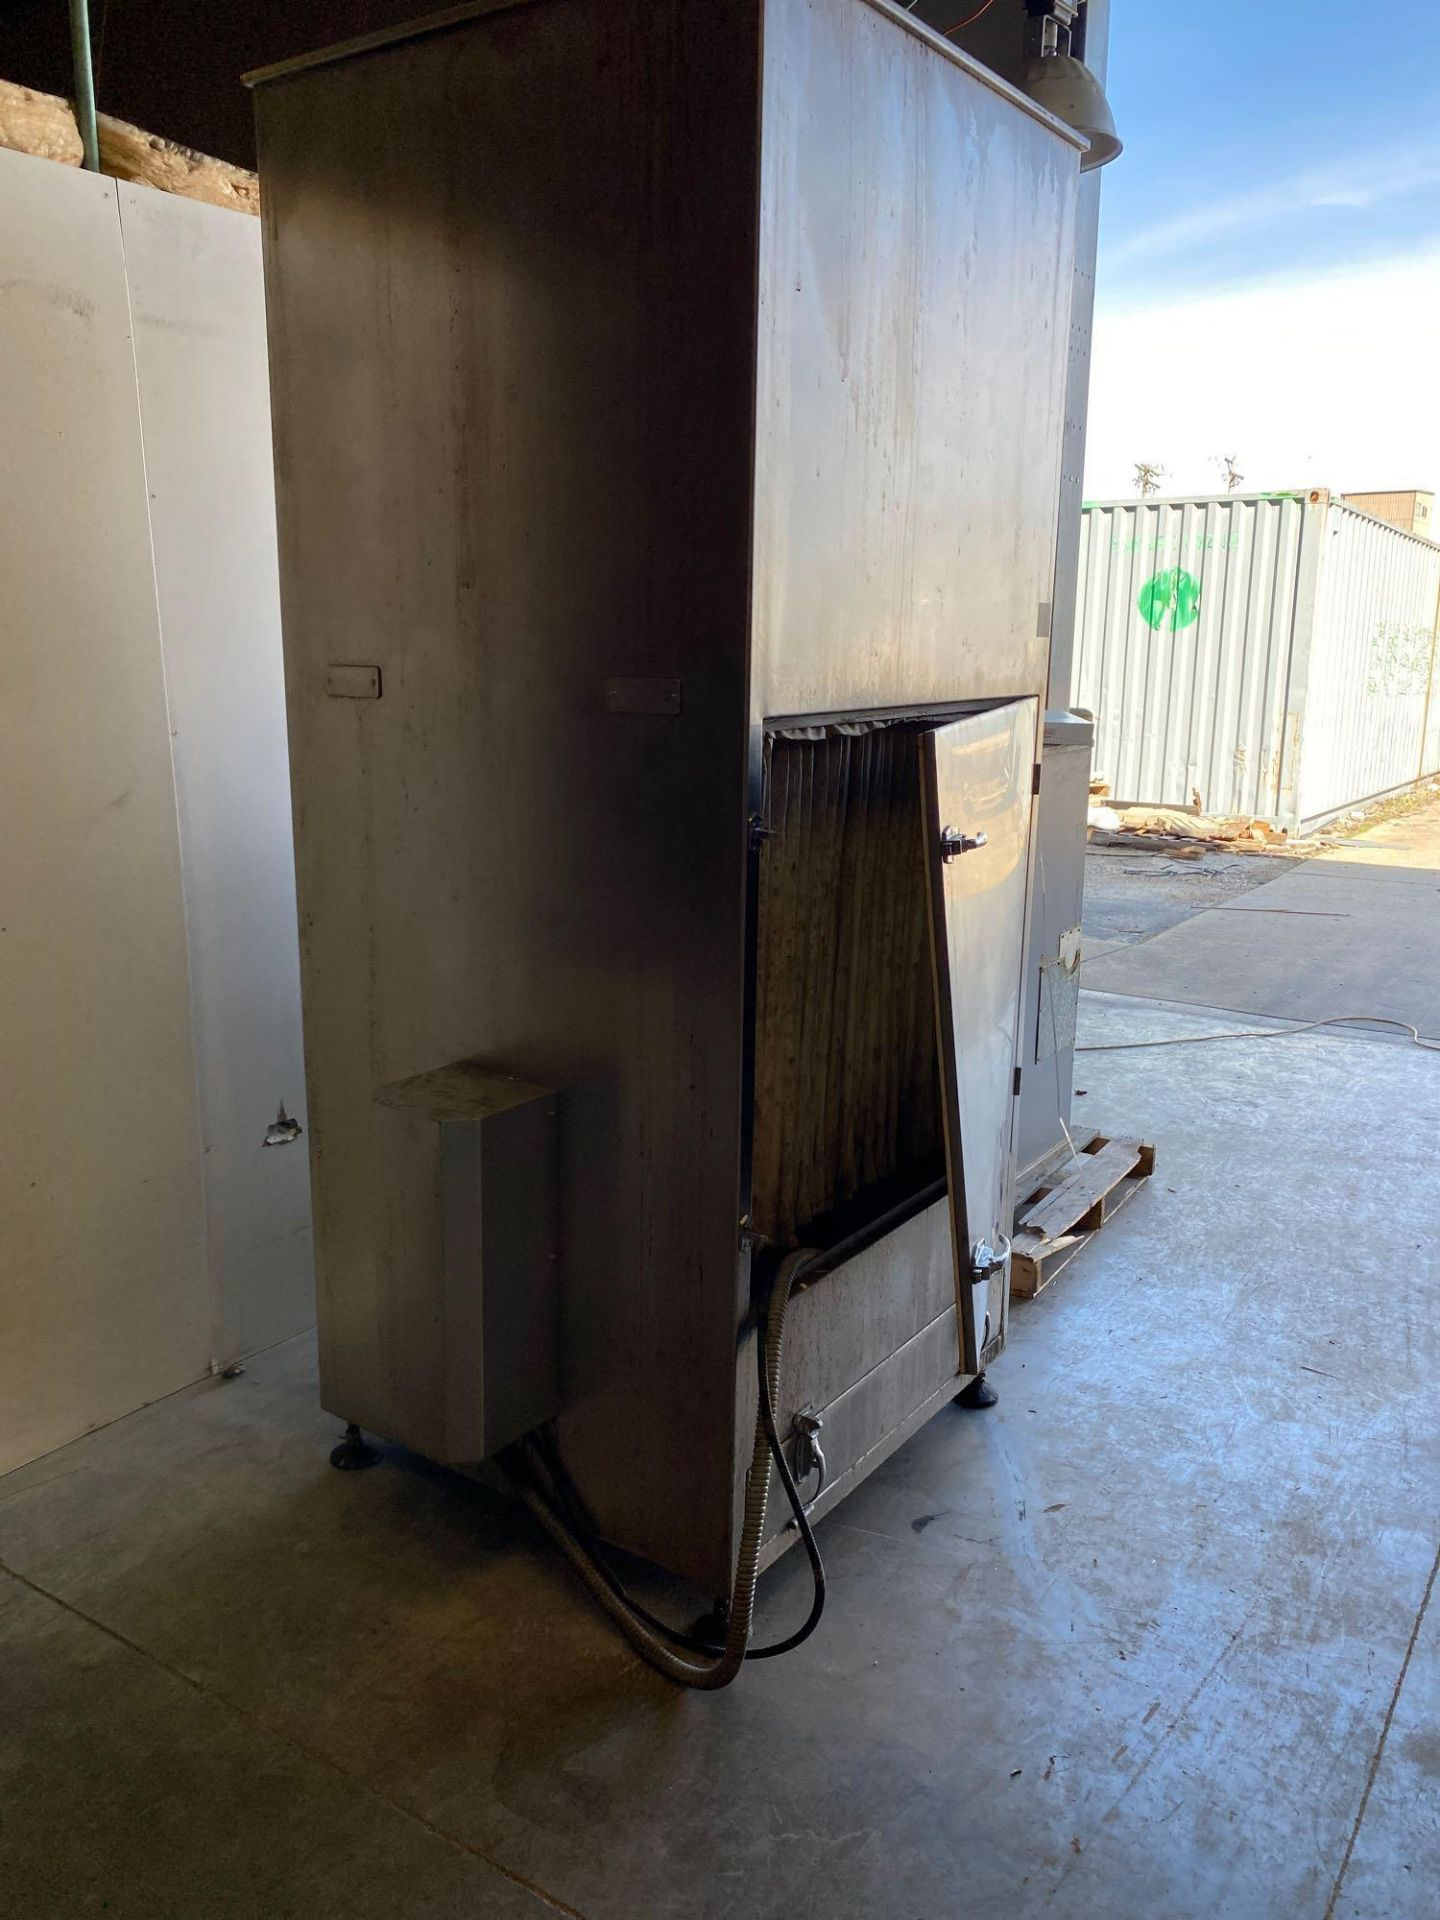 Air Exhaust Dust Collection Cabinet - Goes with 555C - Image 3 of 6